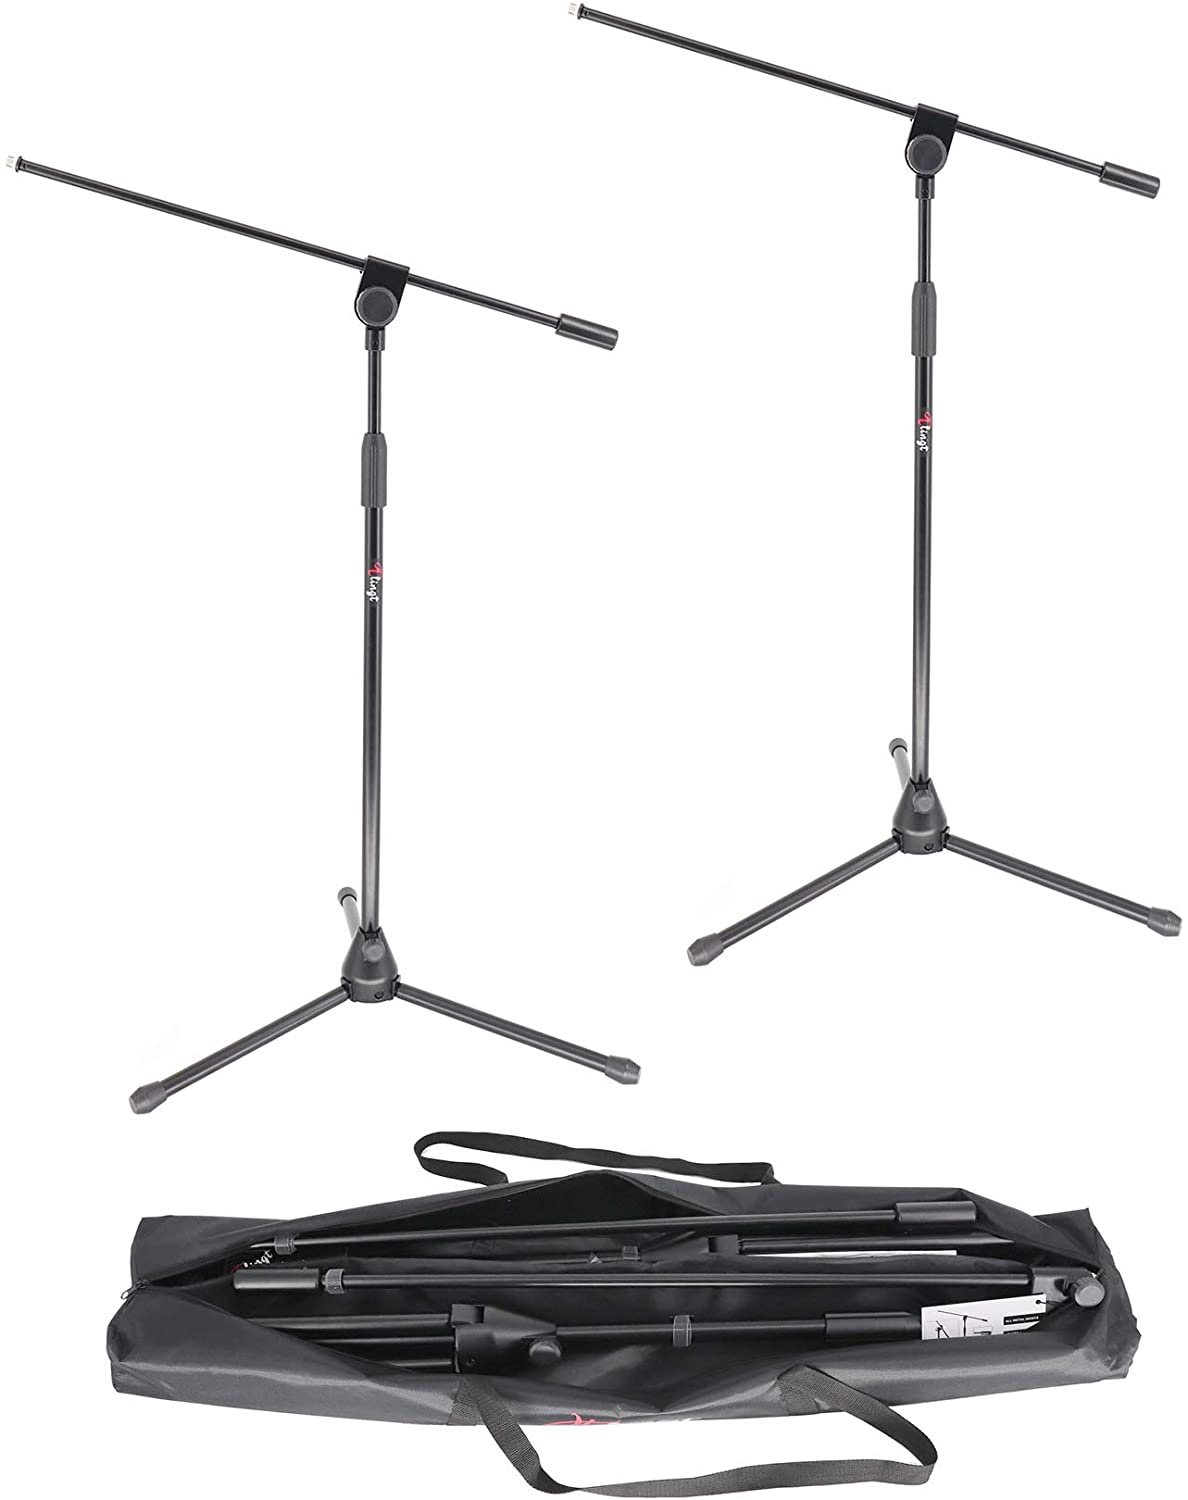 Tlingt Tripod Microphone Boom Stand, Professional Grade Mic Stand, 2-Pack with Portable Waterproof Carrying Bag.